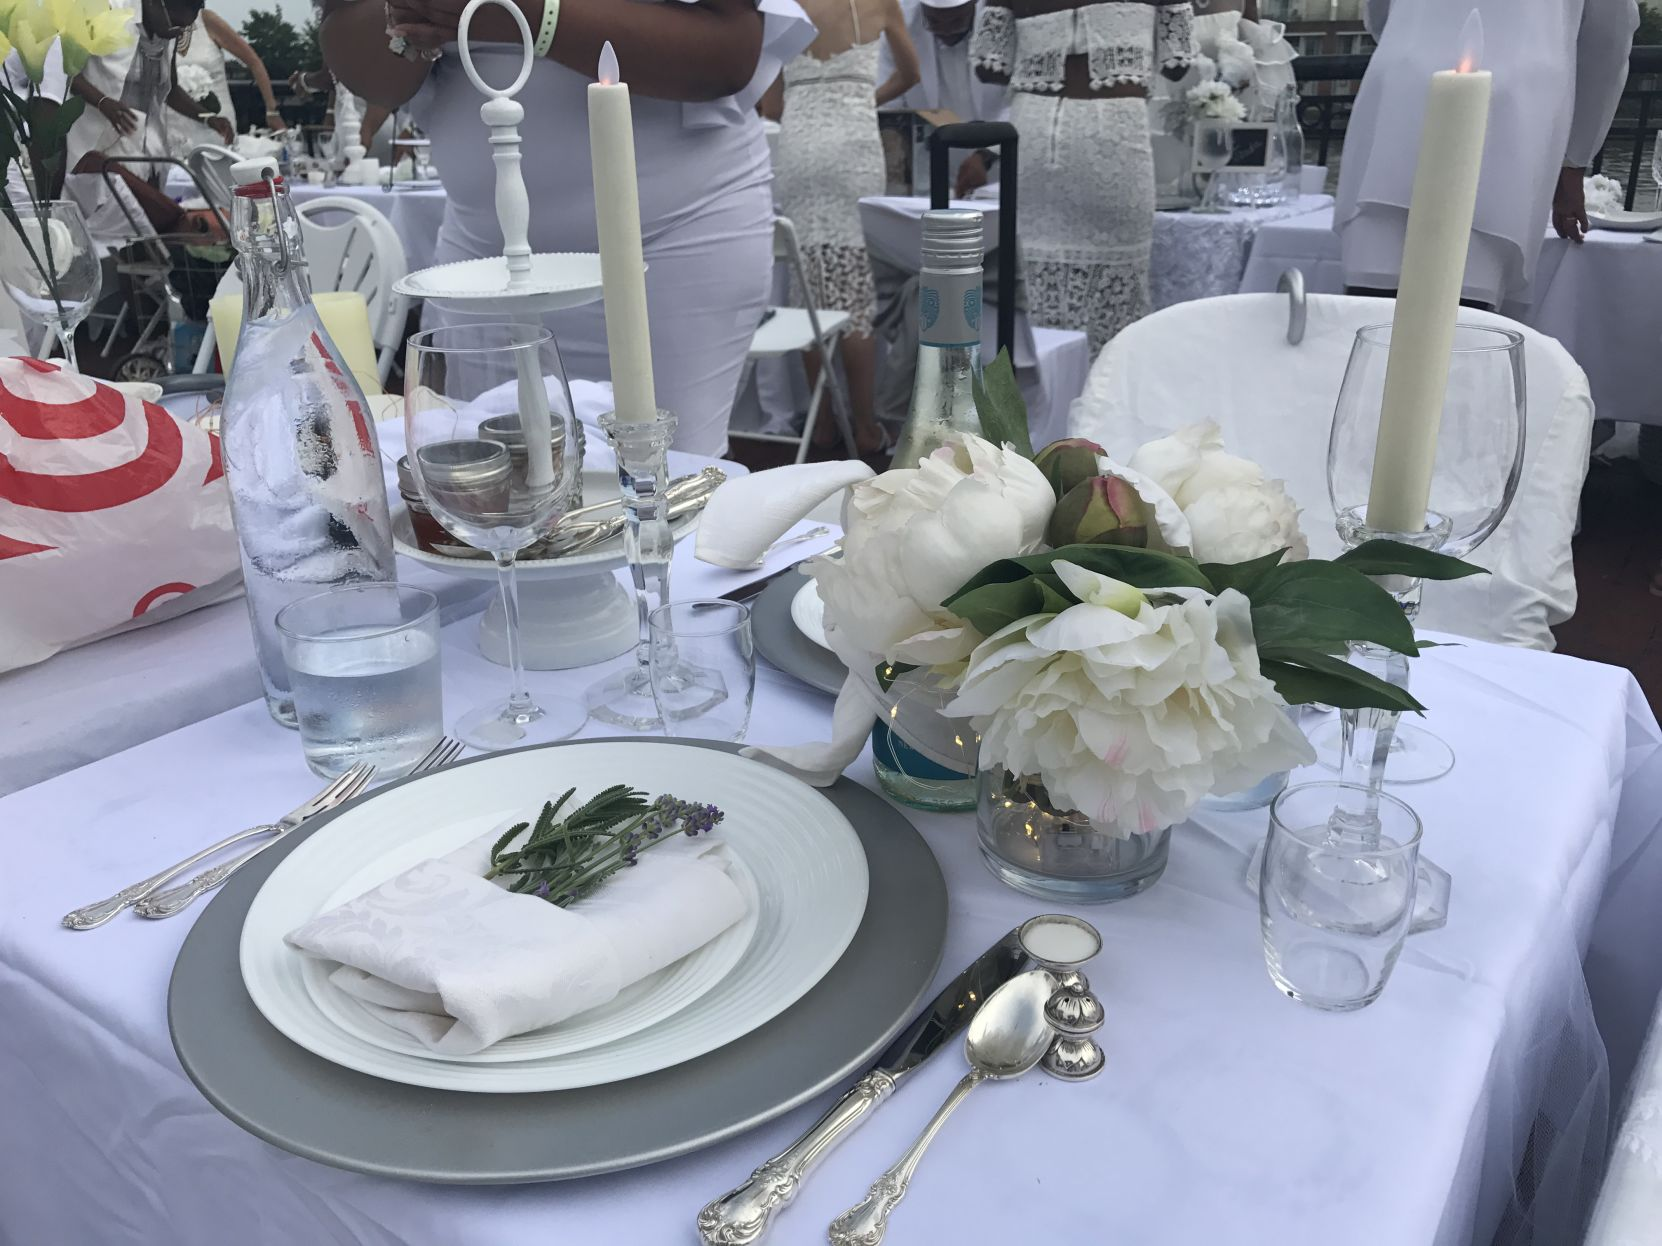 Video The Nationwide Event Diner En Blanc Makes Its Debut In Delaware Features Wdel Com